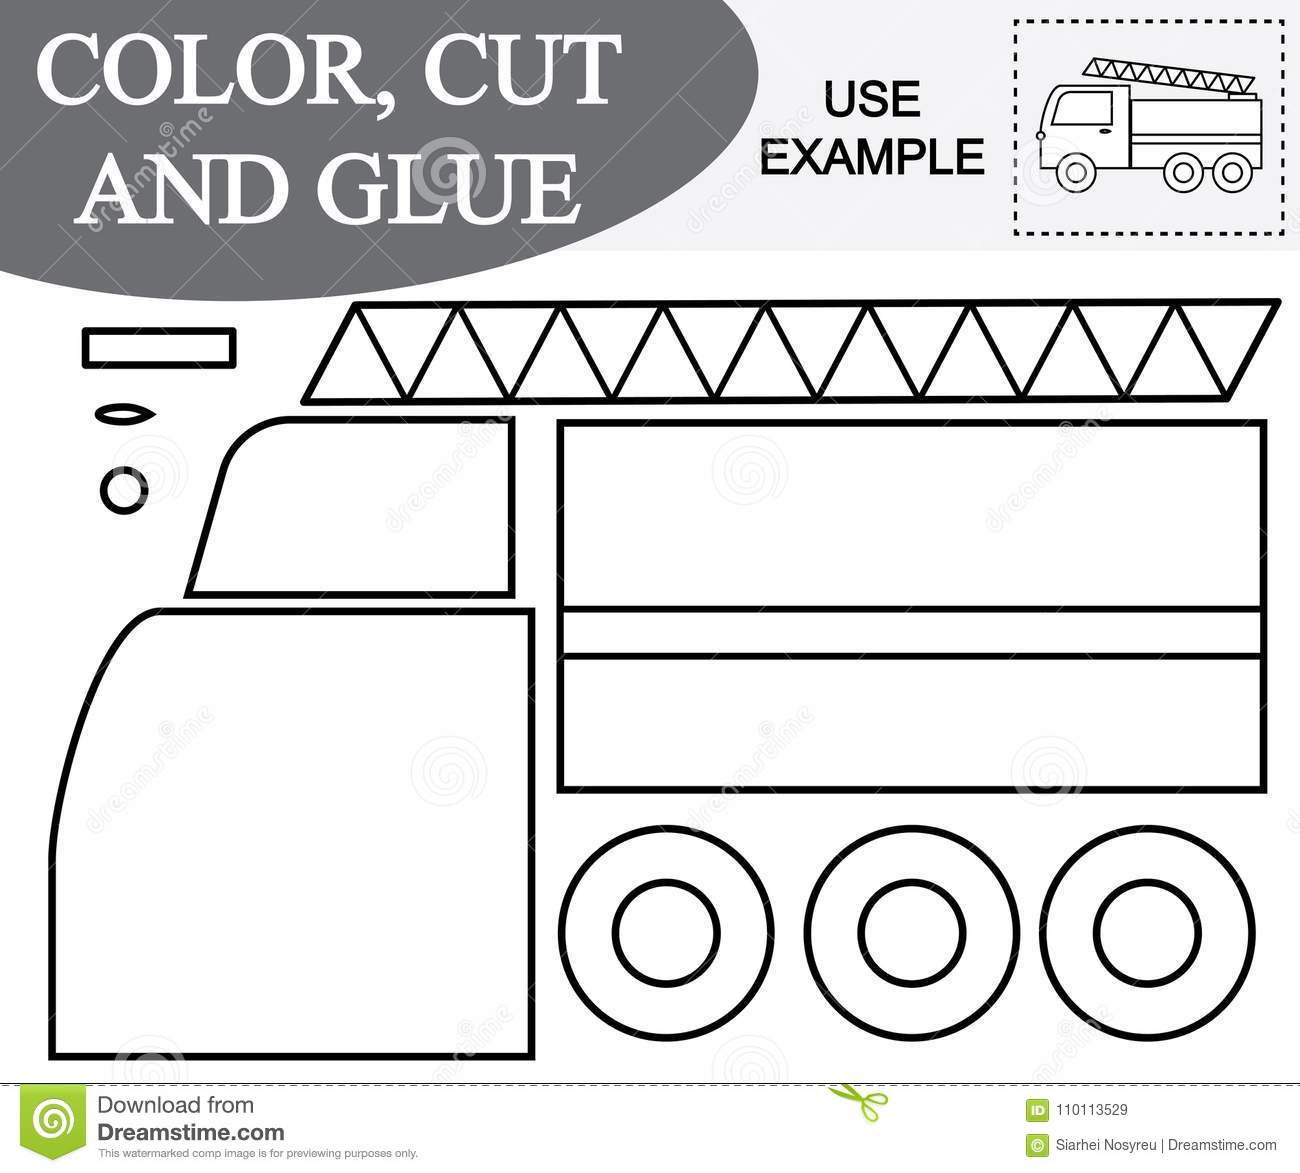 Color Cut And Glue Image Of Fire Escape Car Educational Game For Children Stock Vector